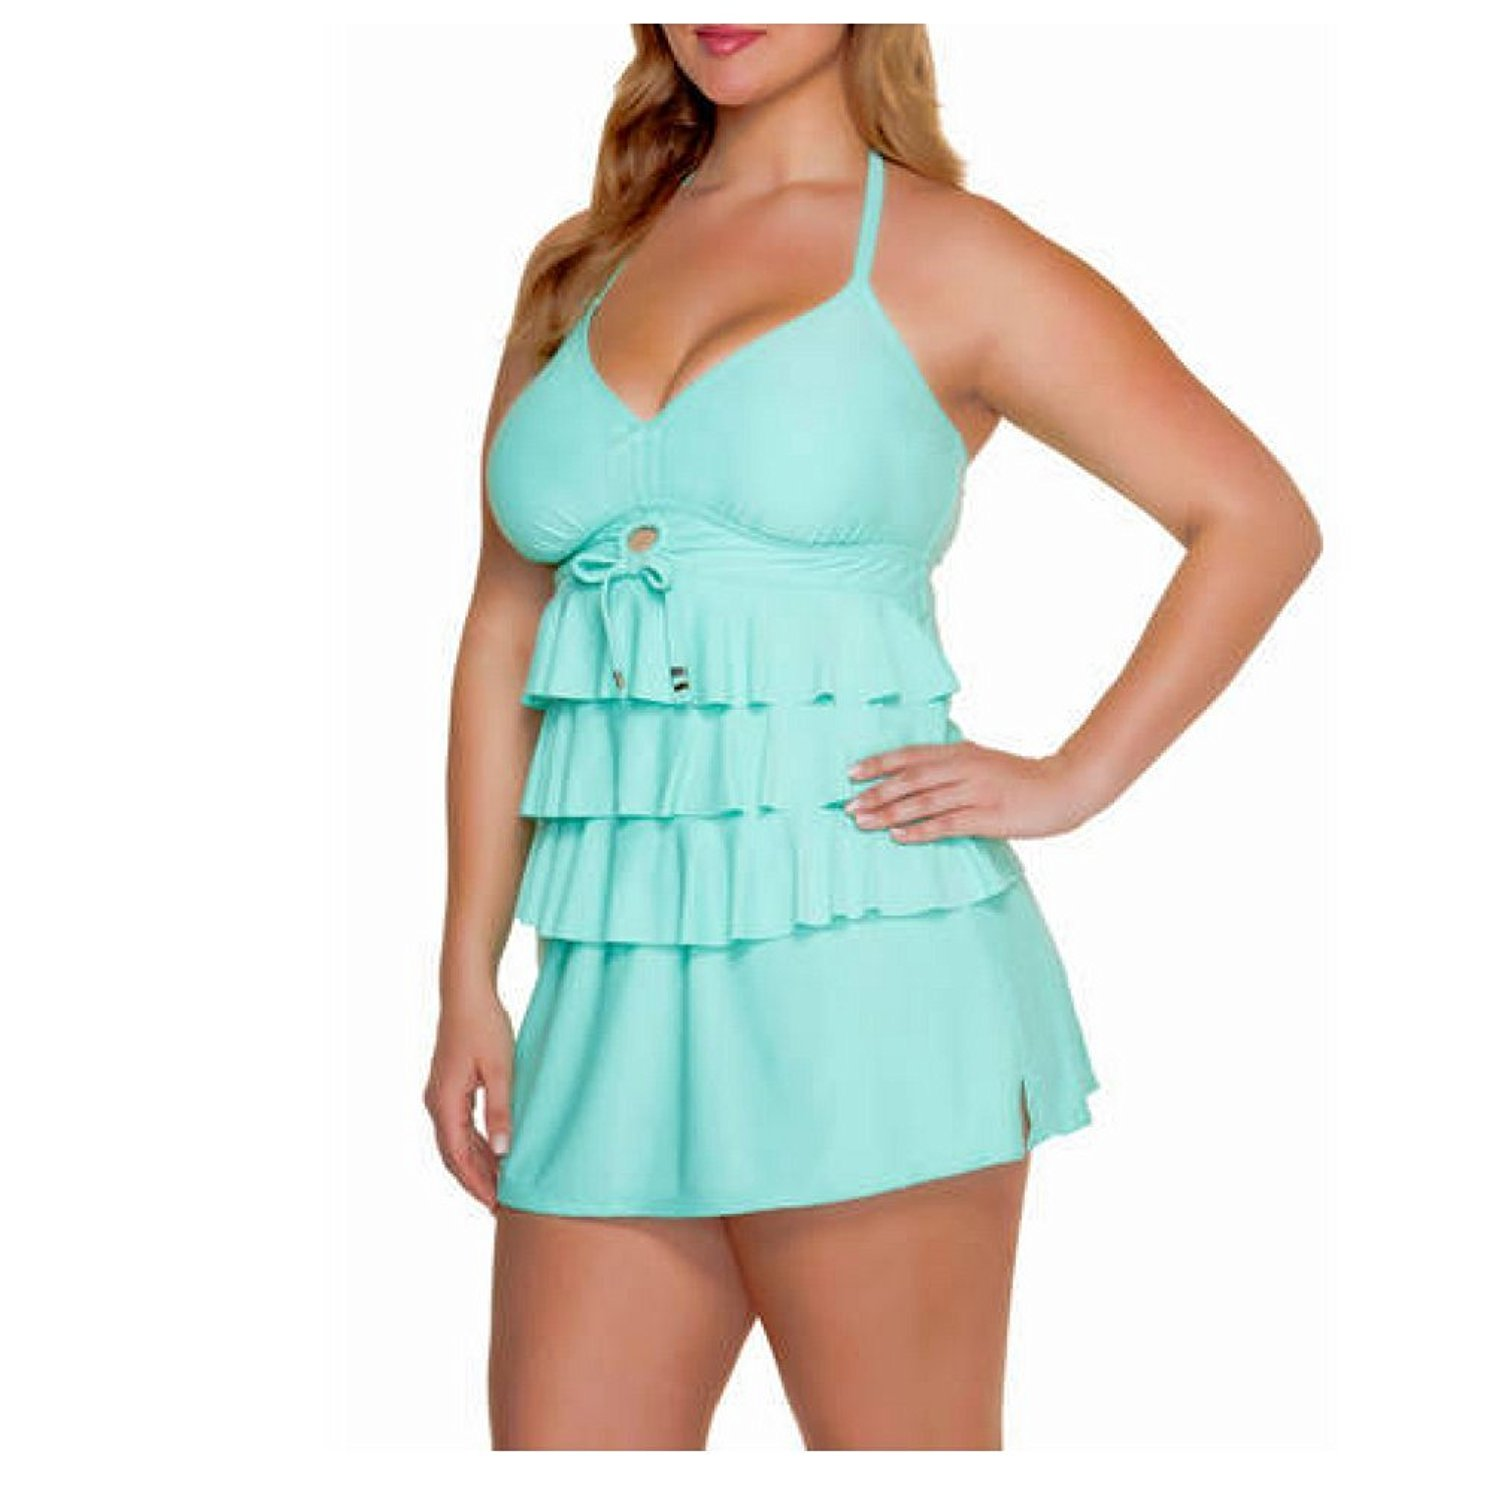 add5b2ad20fb9 Get Quotations · Catalina Women's Plus-Size Tiered Ruffle Tankini Swimsuit  Top